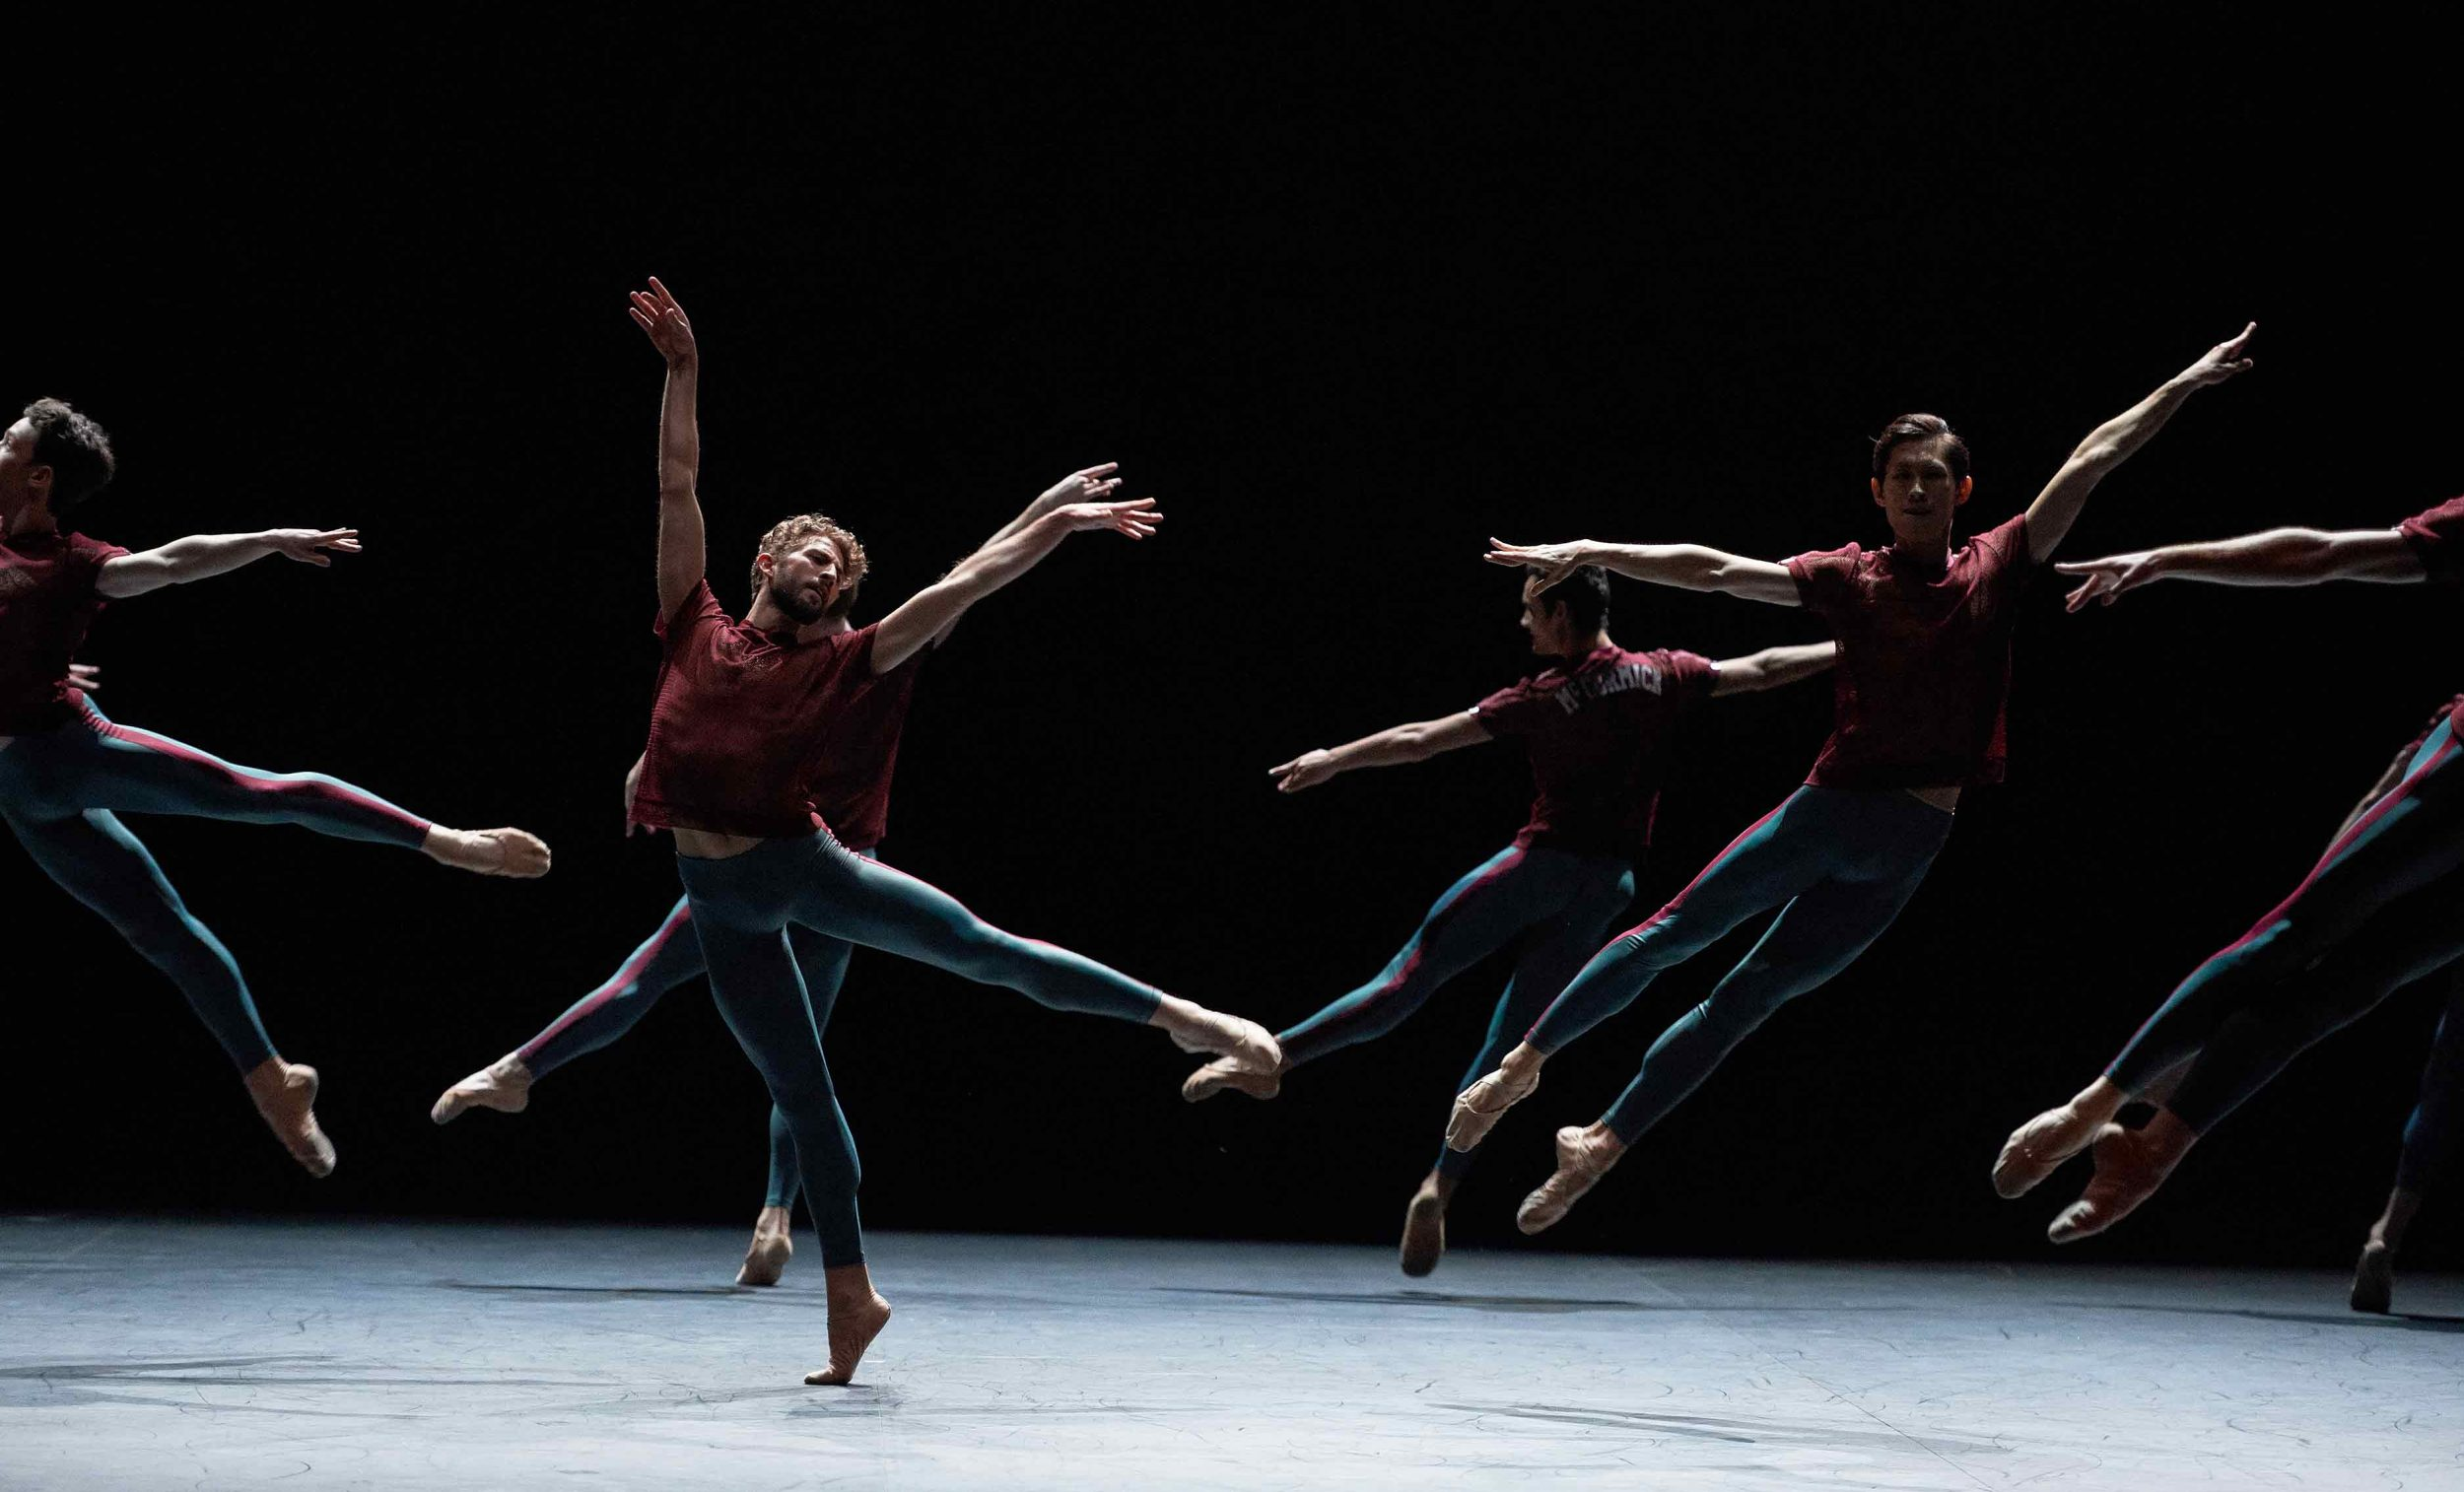 Giorgio-Garrett-and-English-National-Ballet-in-Playlist-(Track-1,2)-by-William-Forsythe